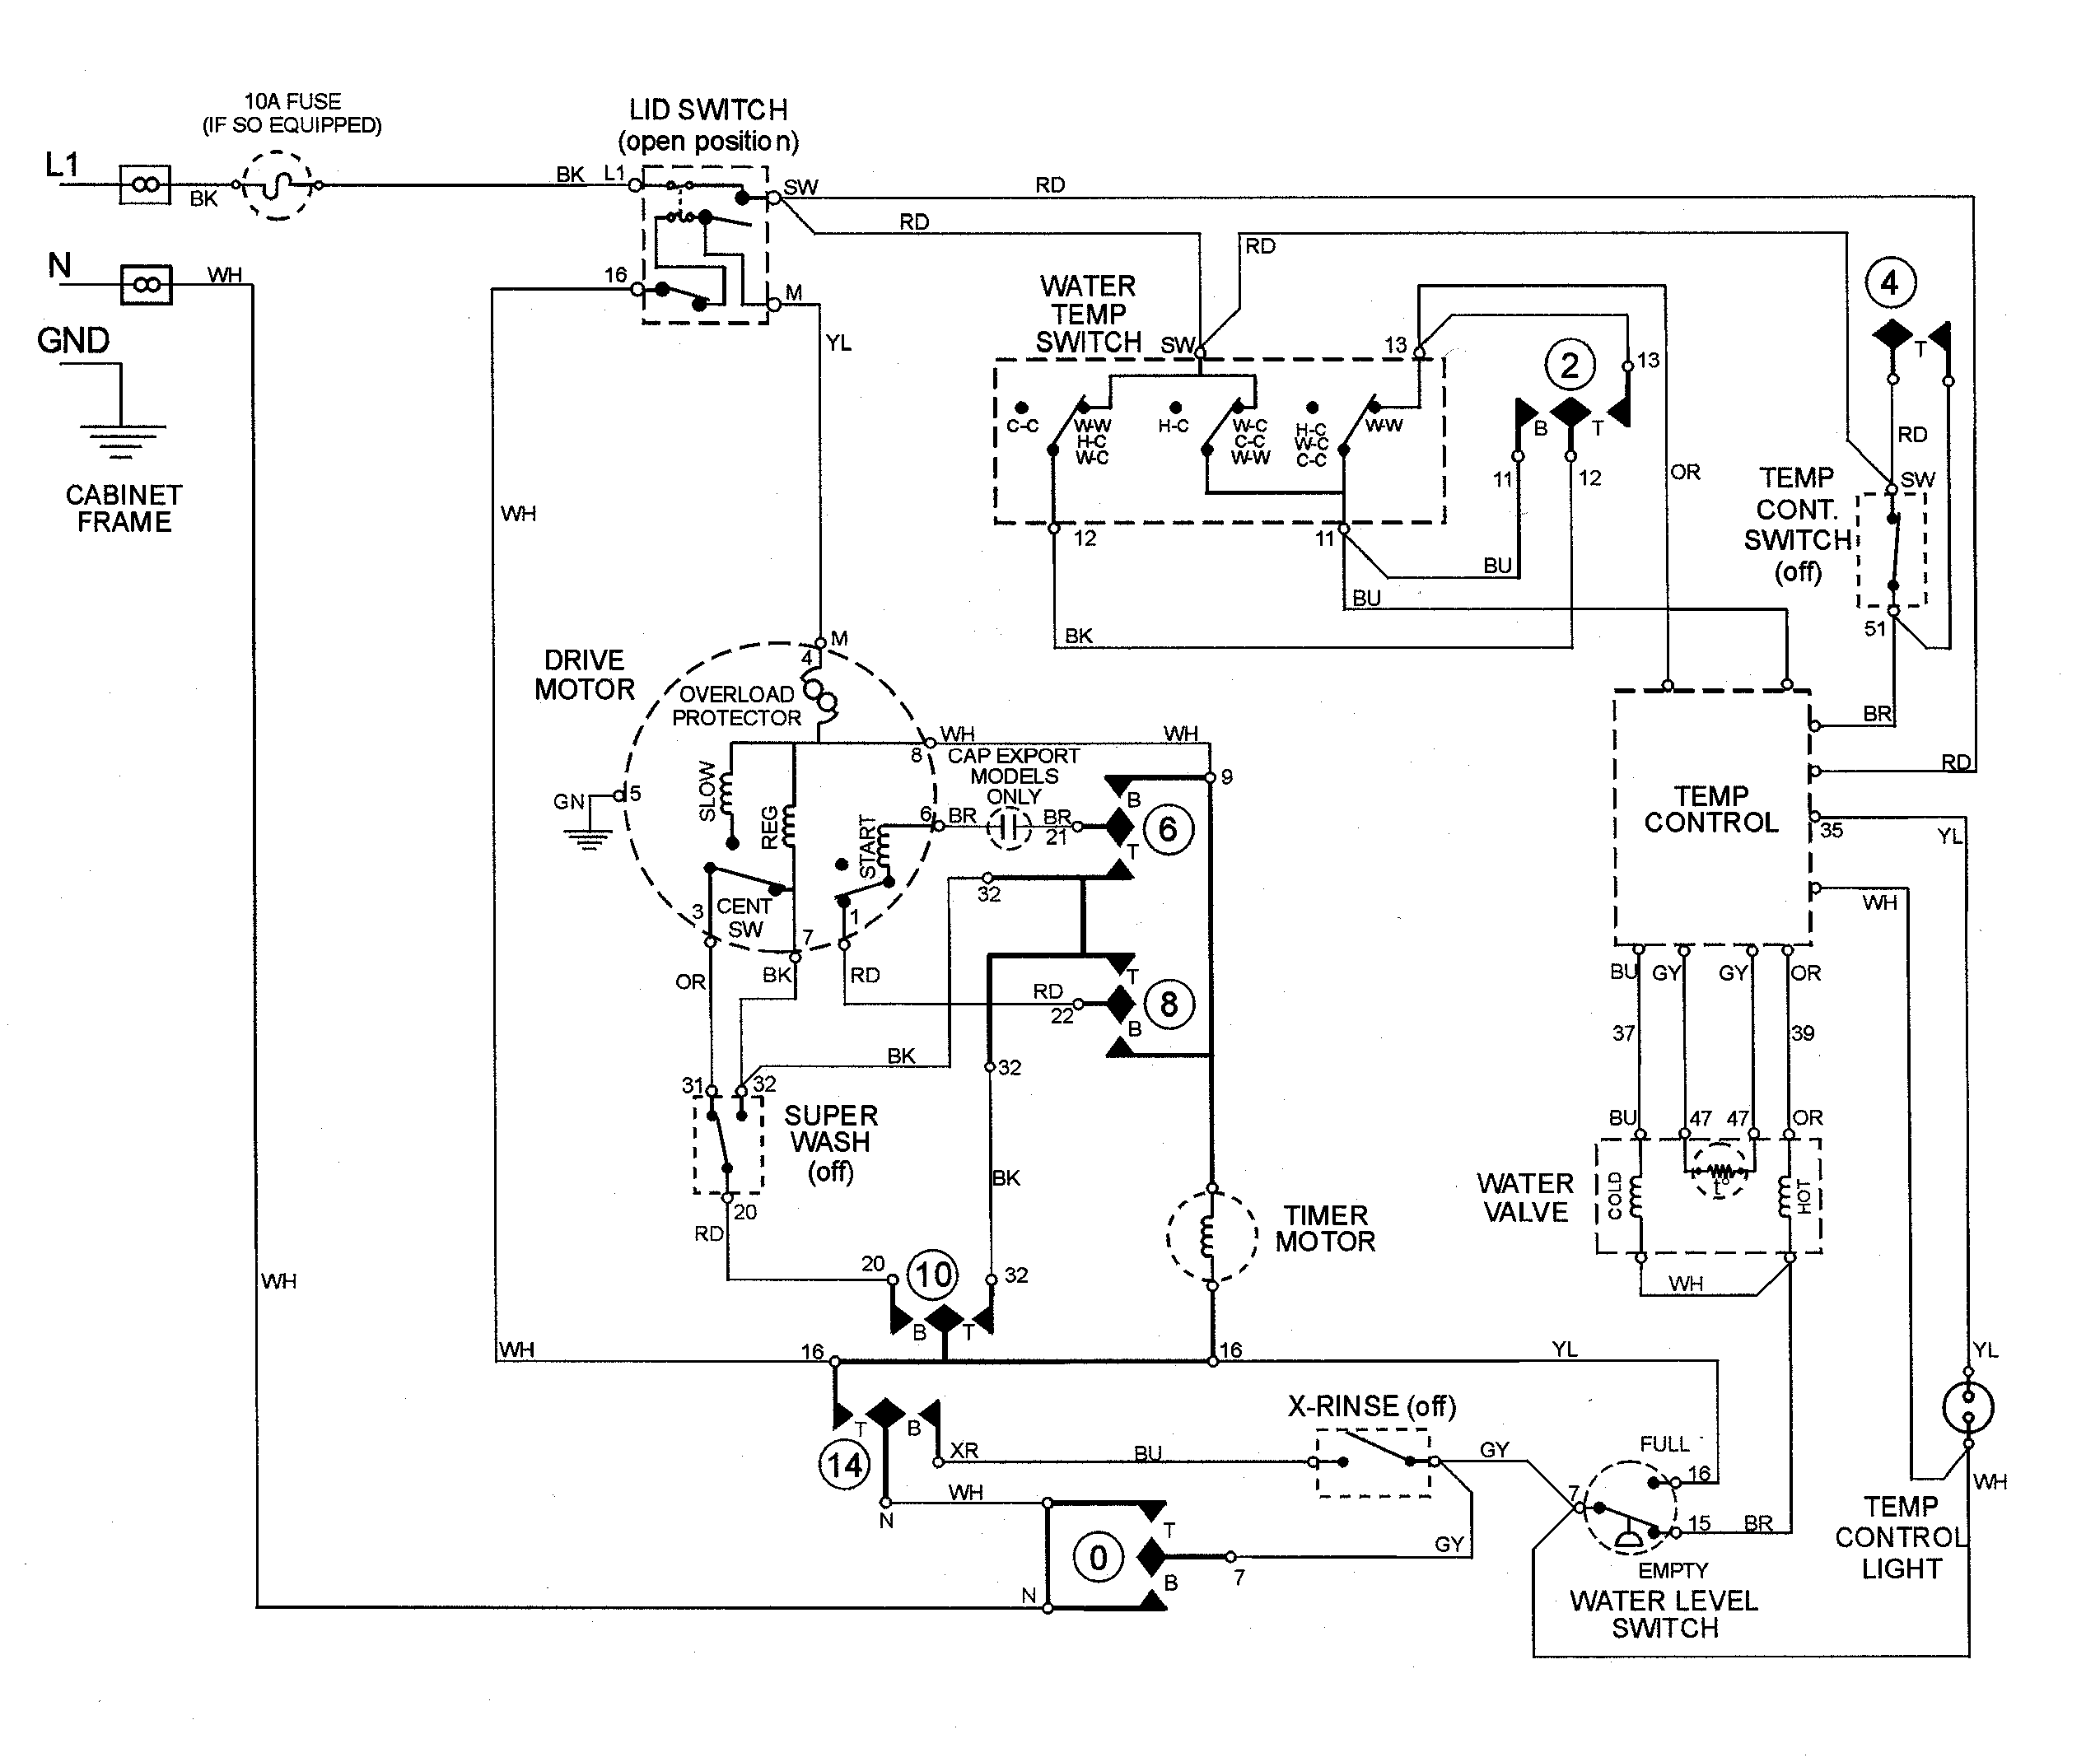 hight resolution of ge ev1 wire diagram wiring diagram advance ge ev 1 wire diagram